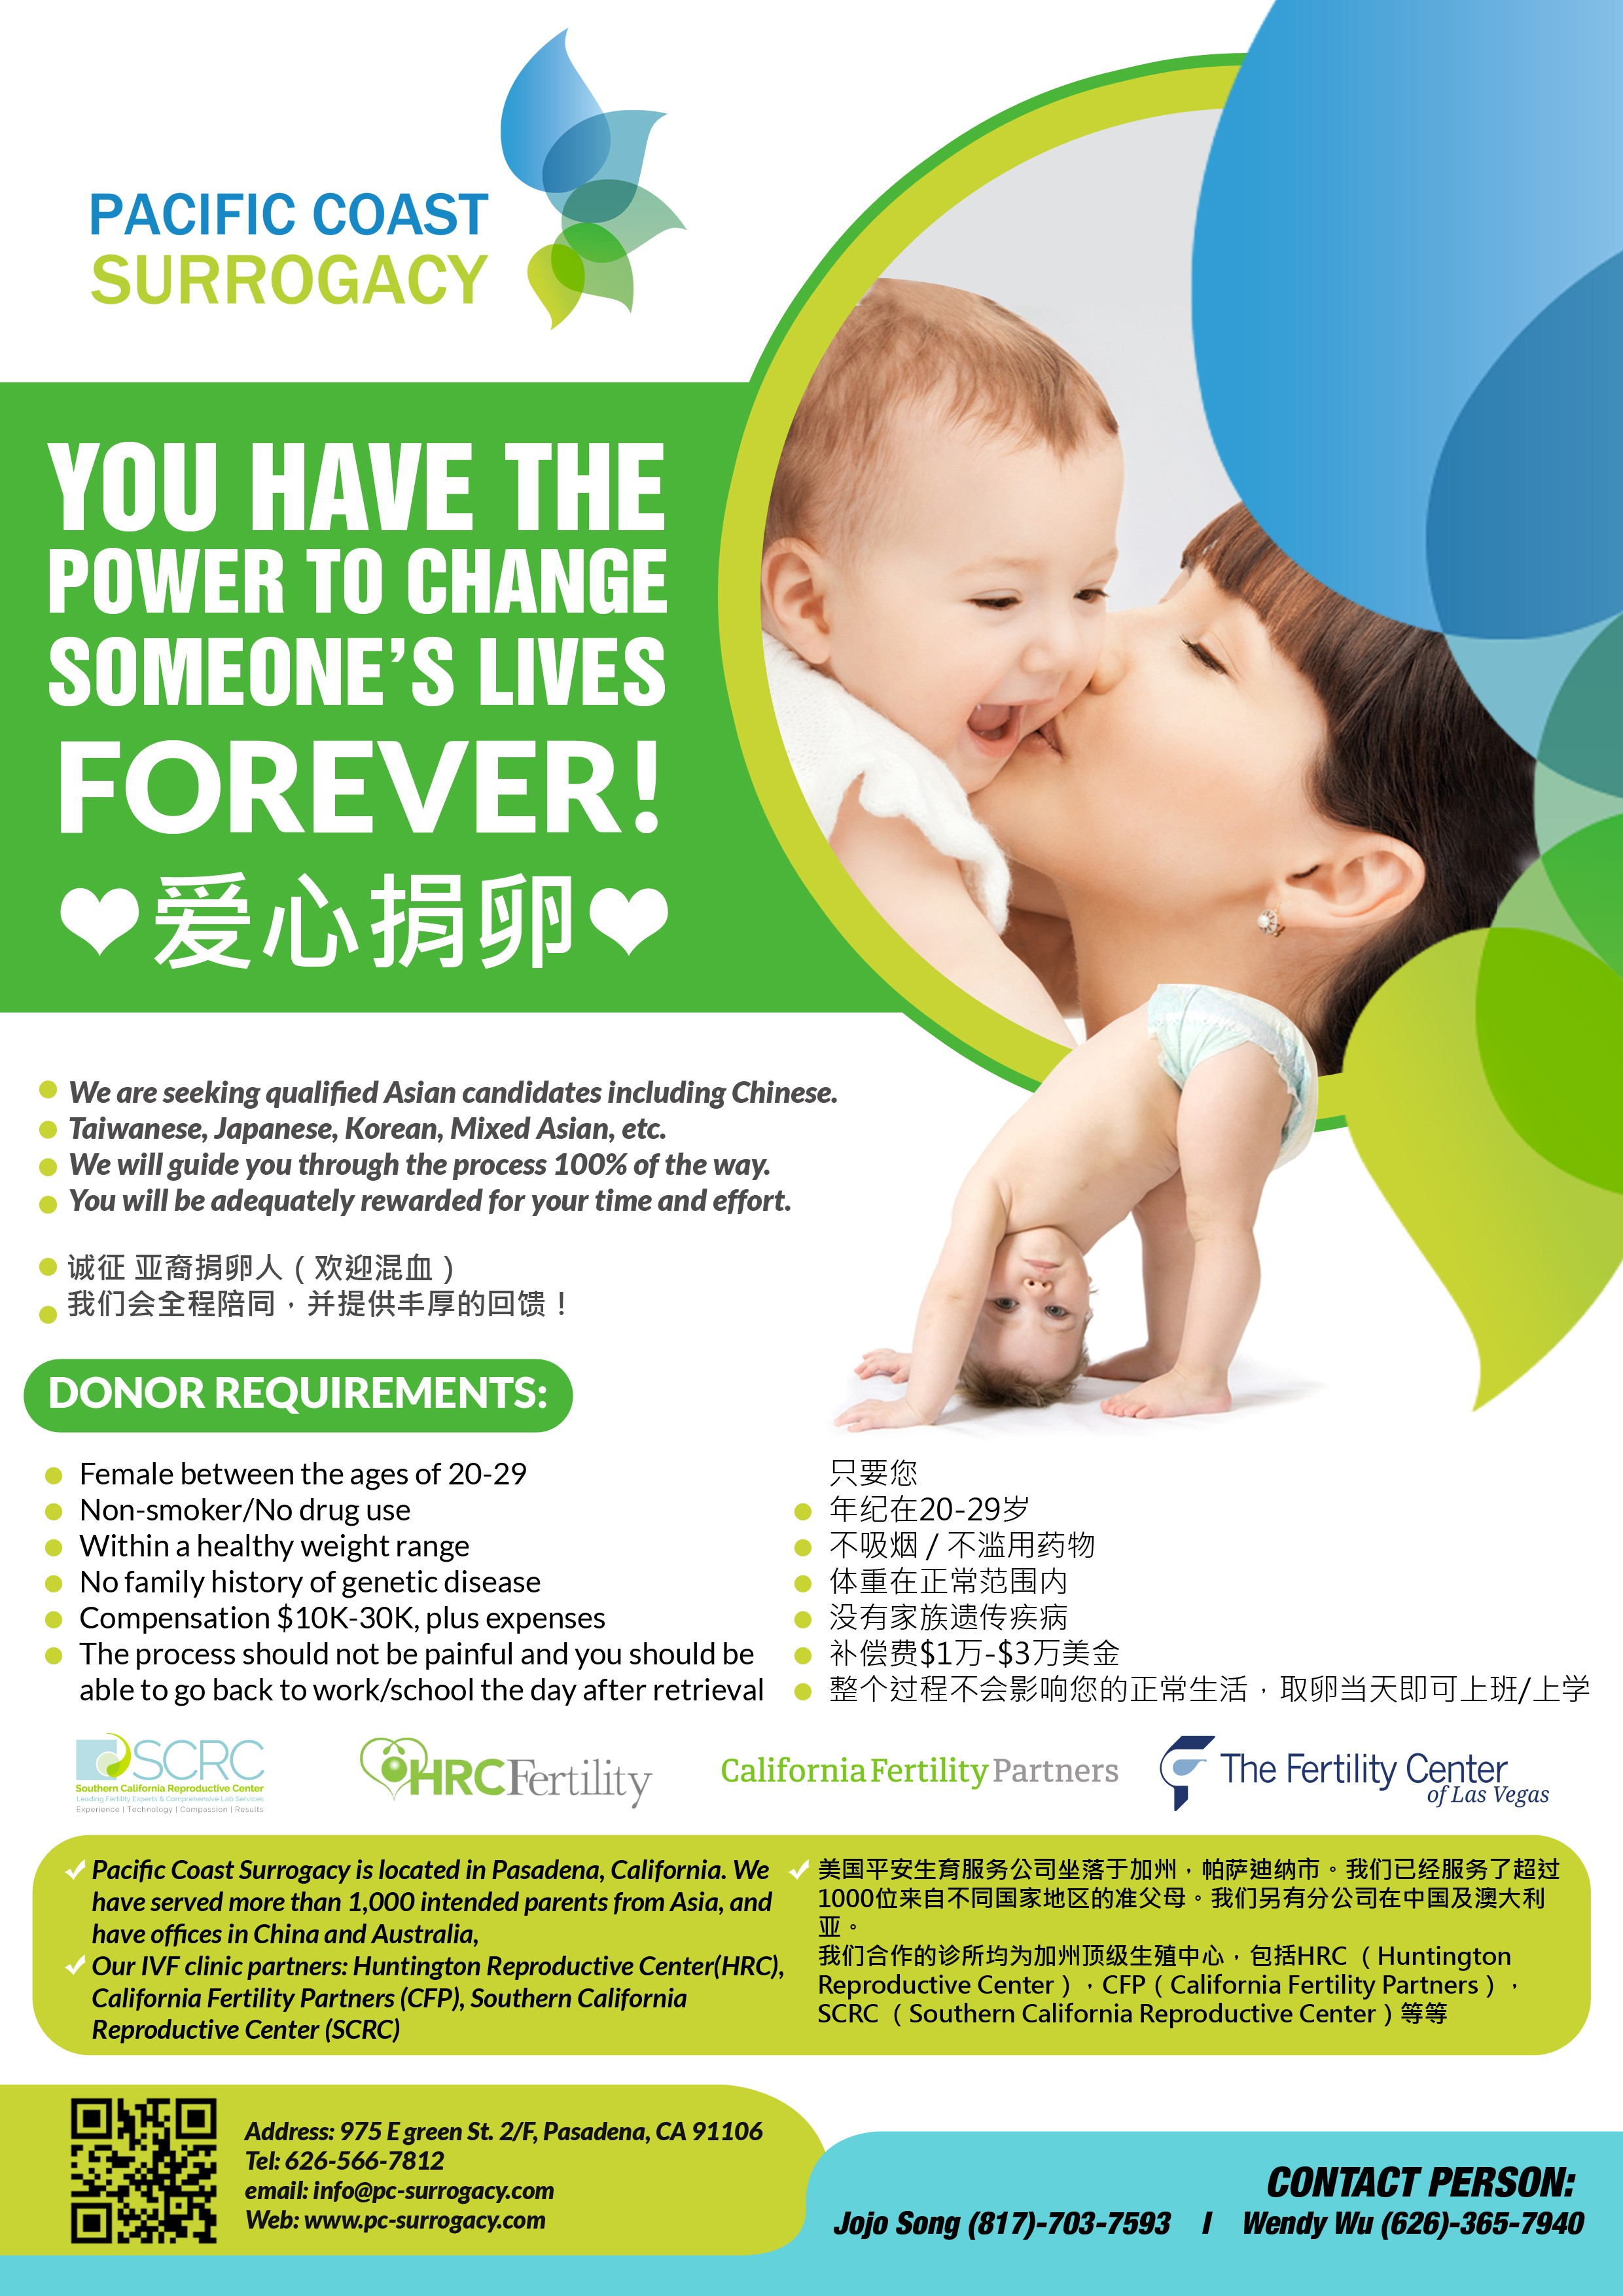 A poster to solicit egg donors